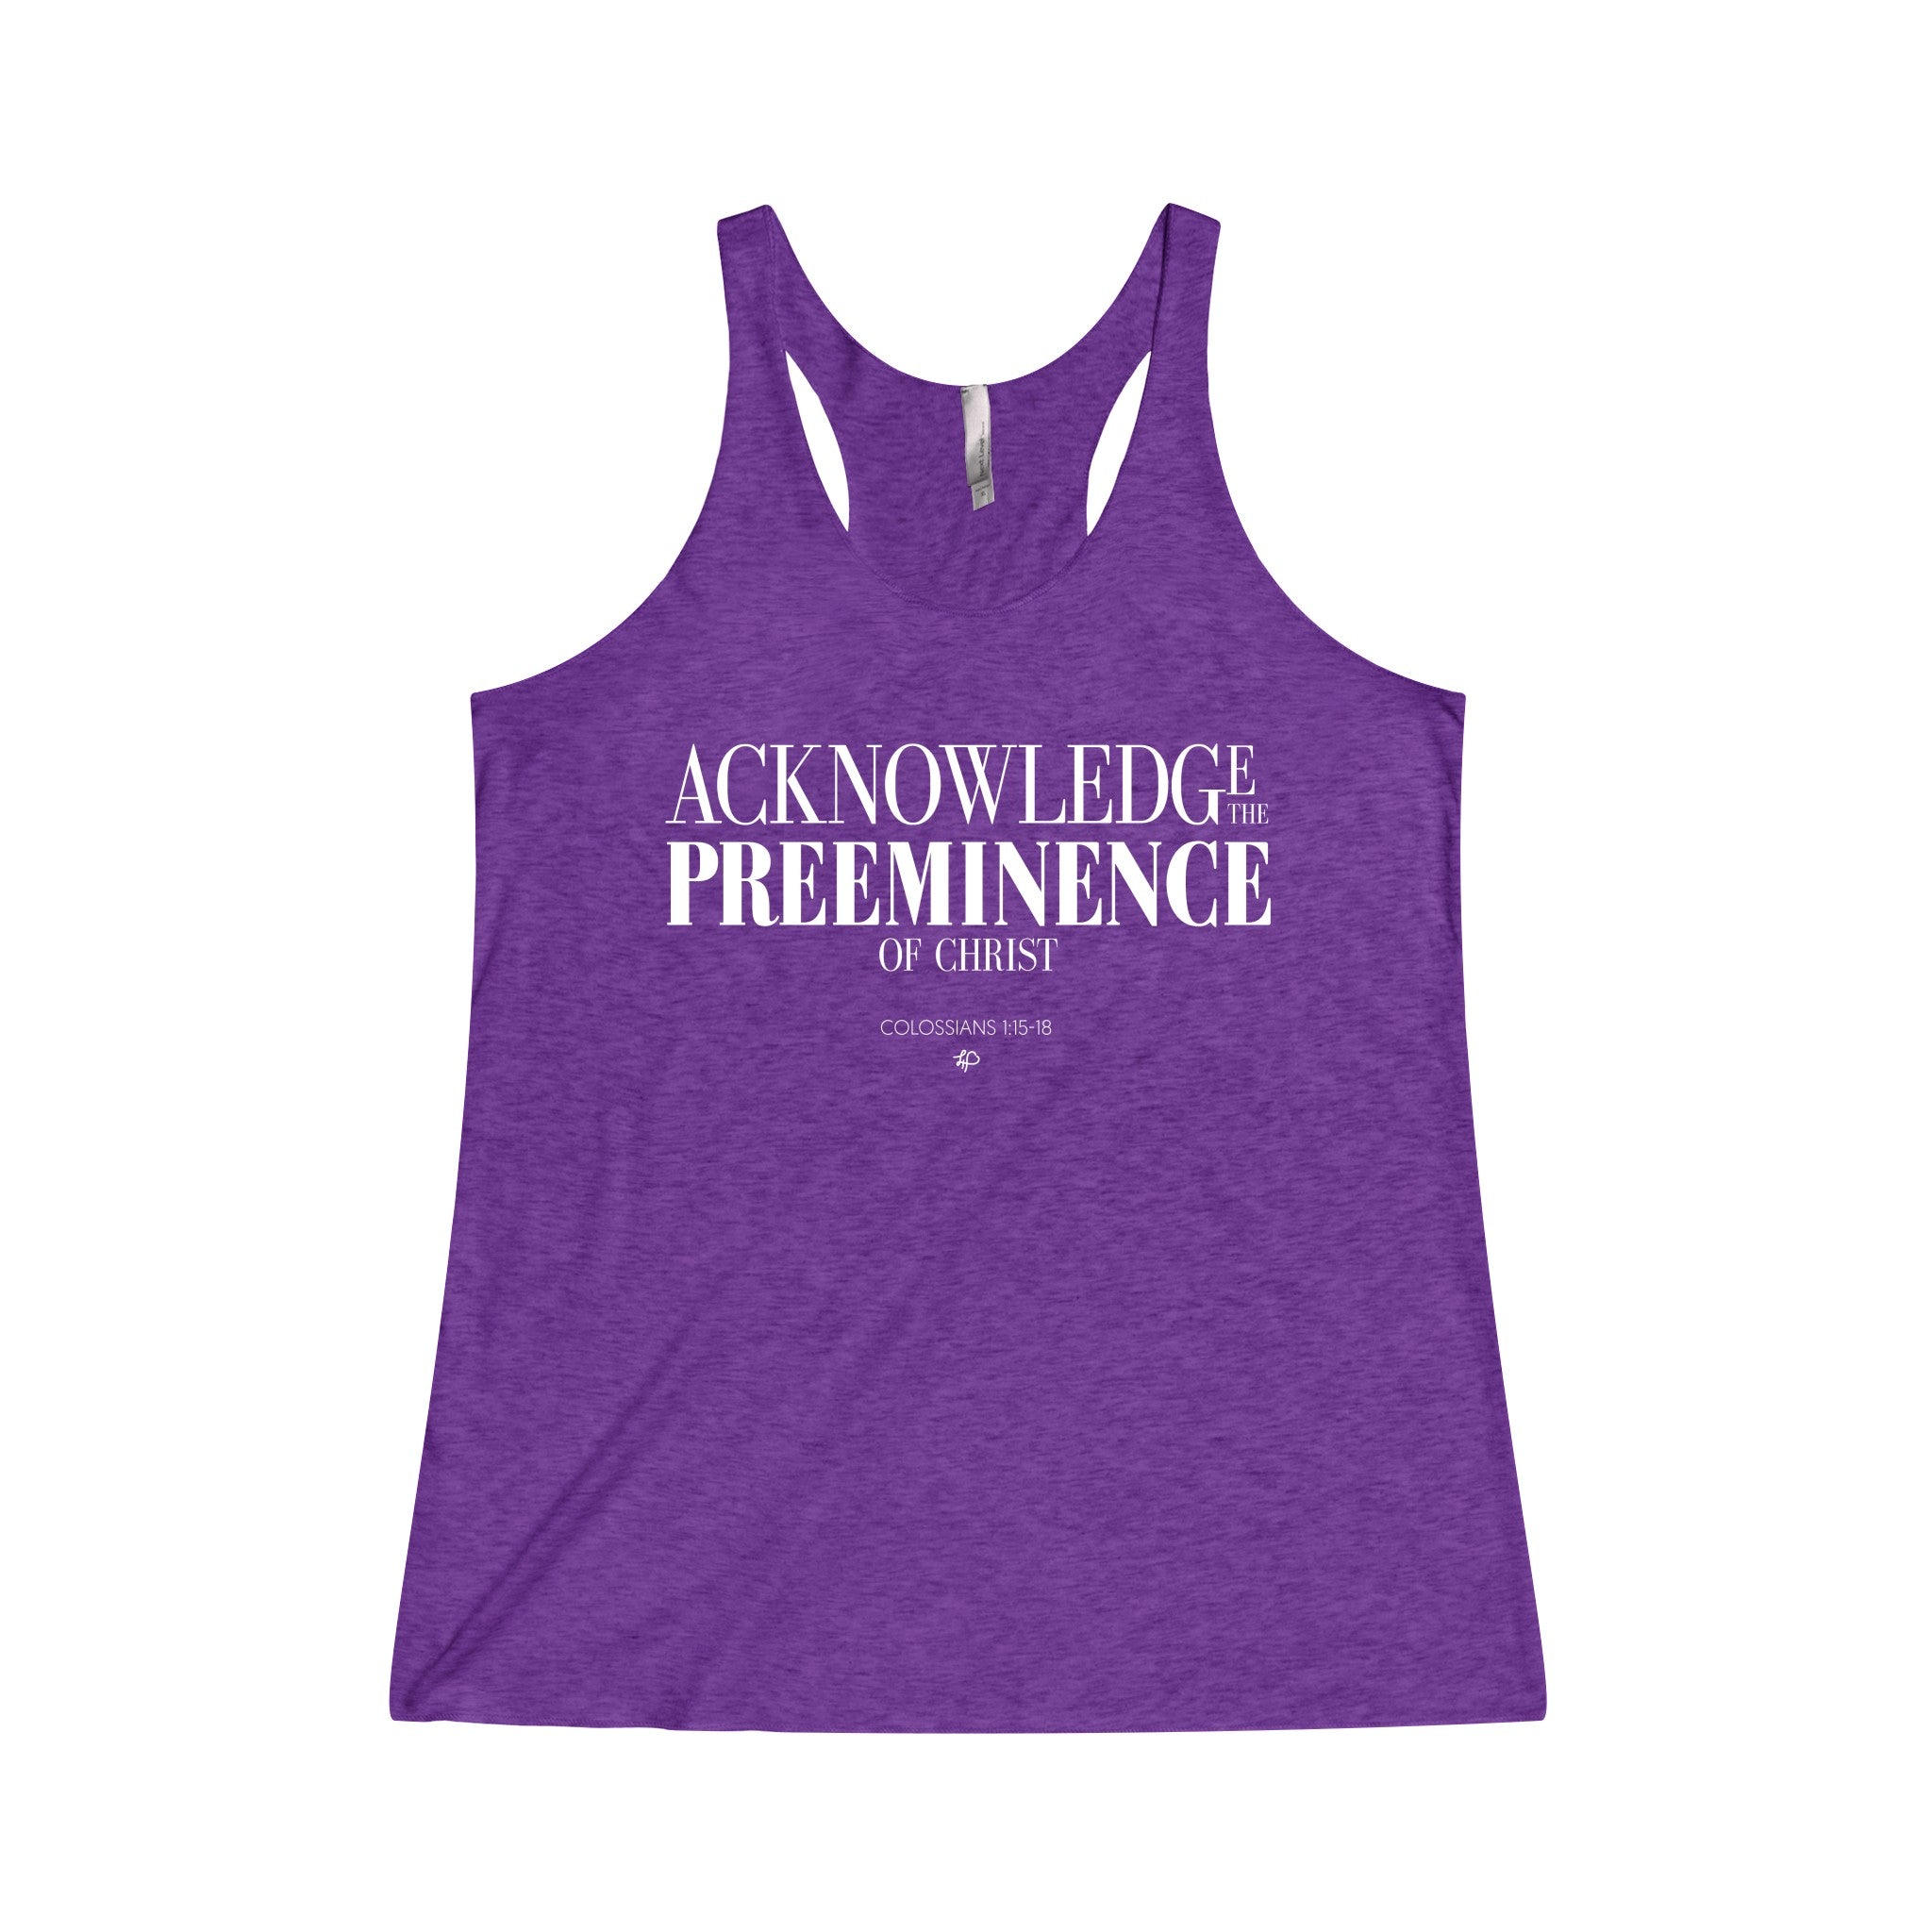 Acknowledge the Preeminence of Christ Women's Tri-Blend Racerback Tank